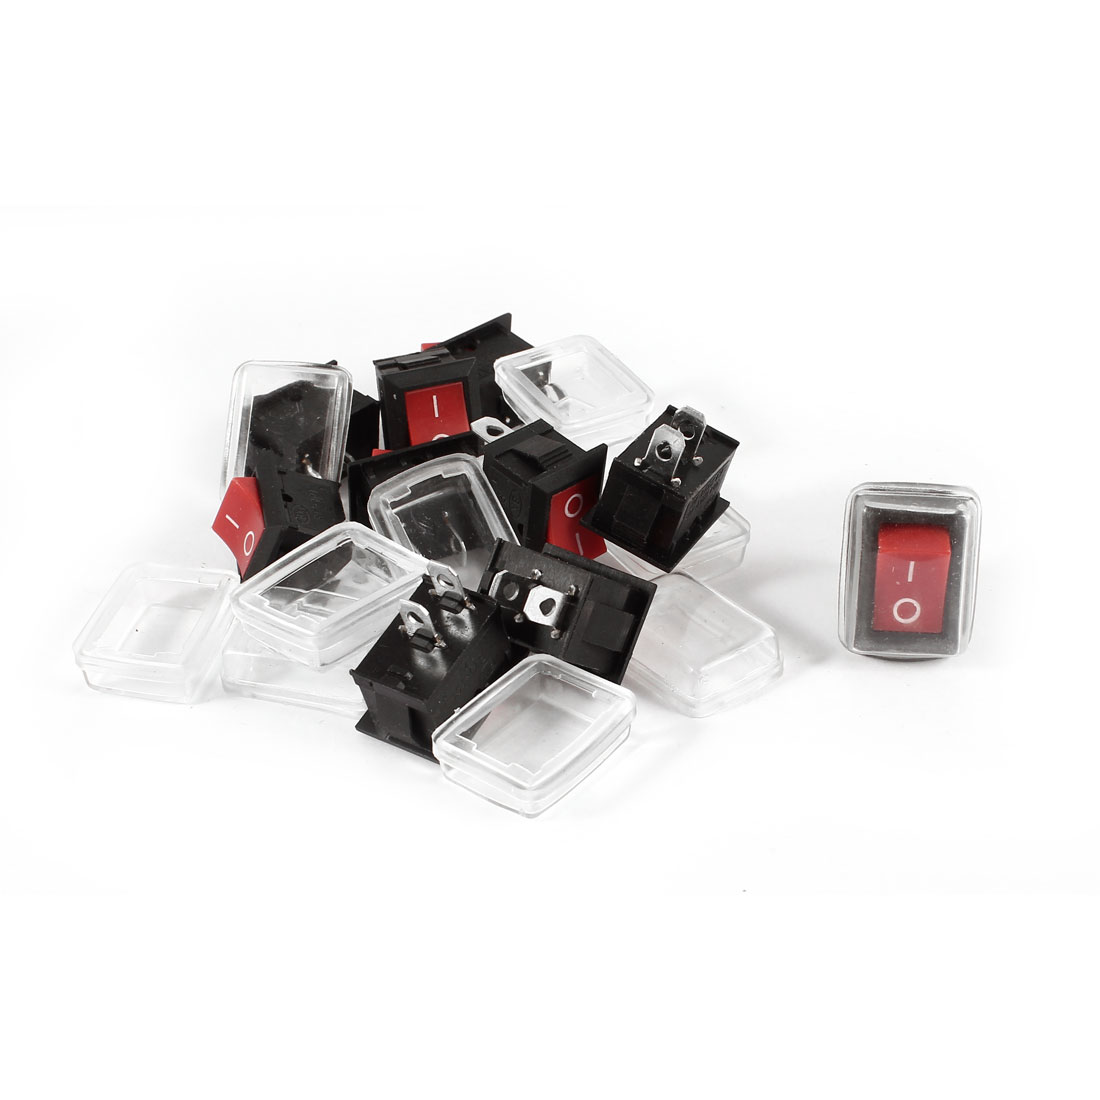 10 Pcs RY1-101 2Pin SPST ON-OFF Rocker Switches AC 125V/10A 250V/6A w Waterproof Cover